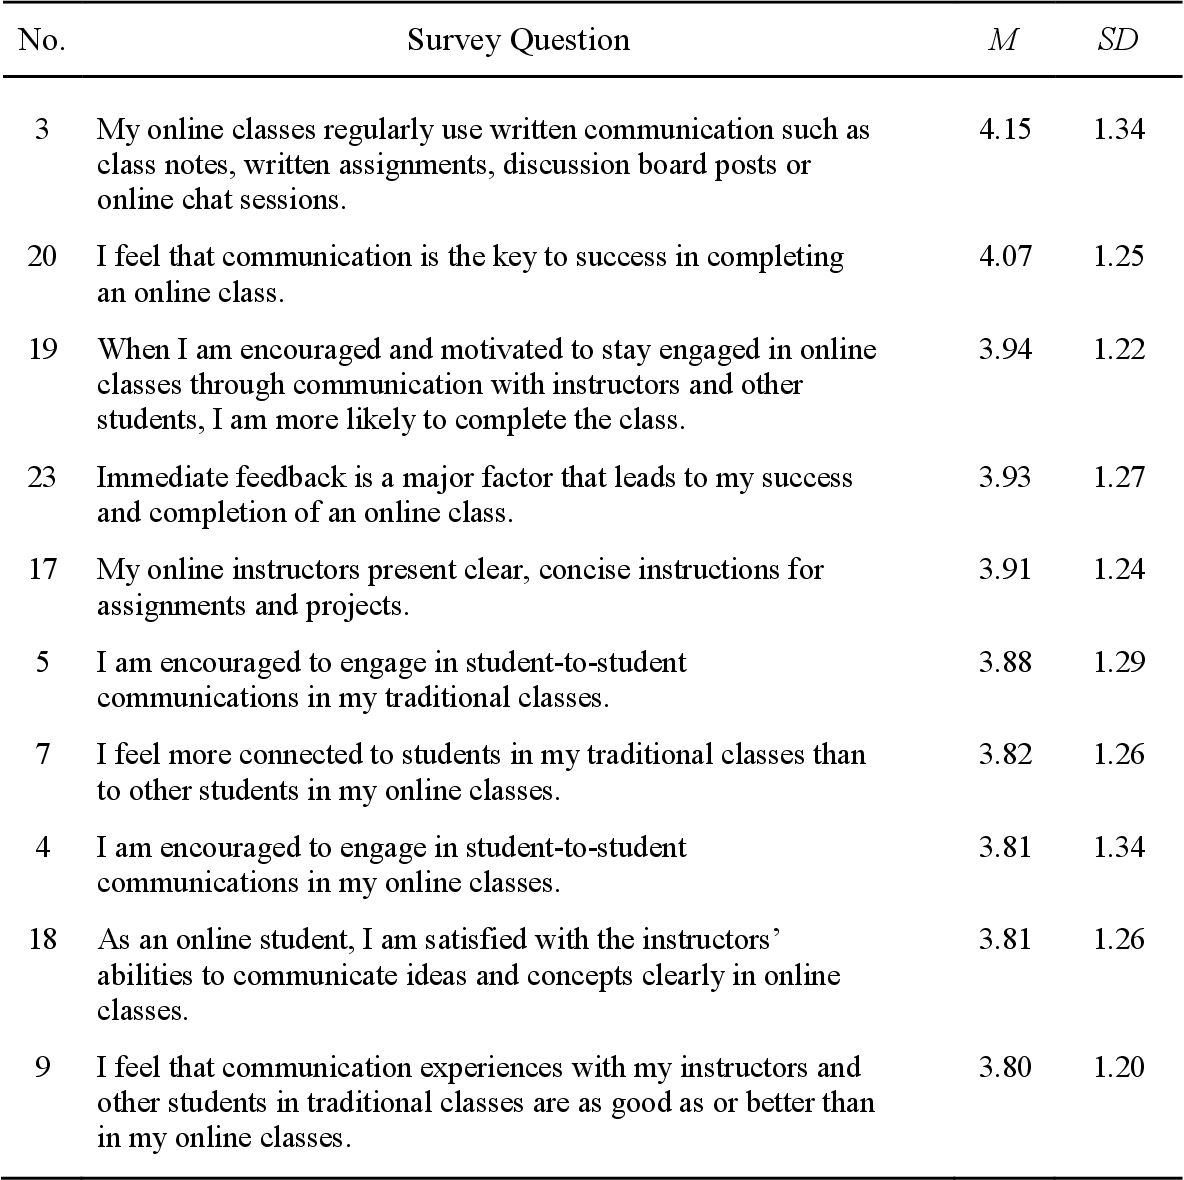 Table 6 from Community College Students' Perceptions of